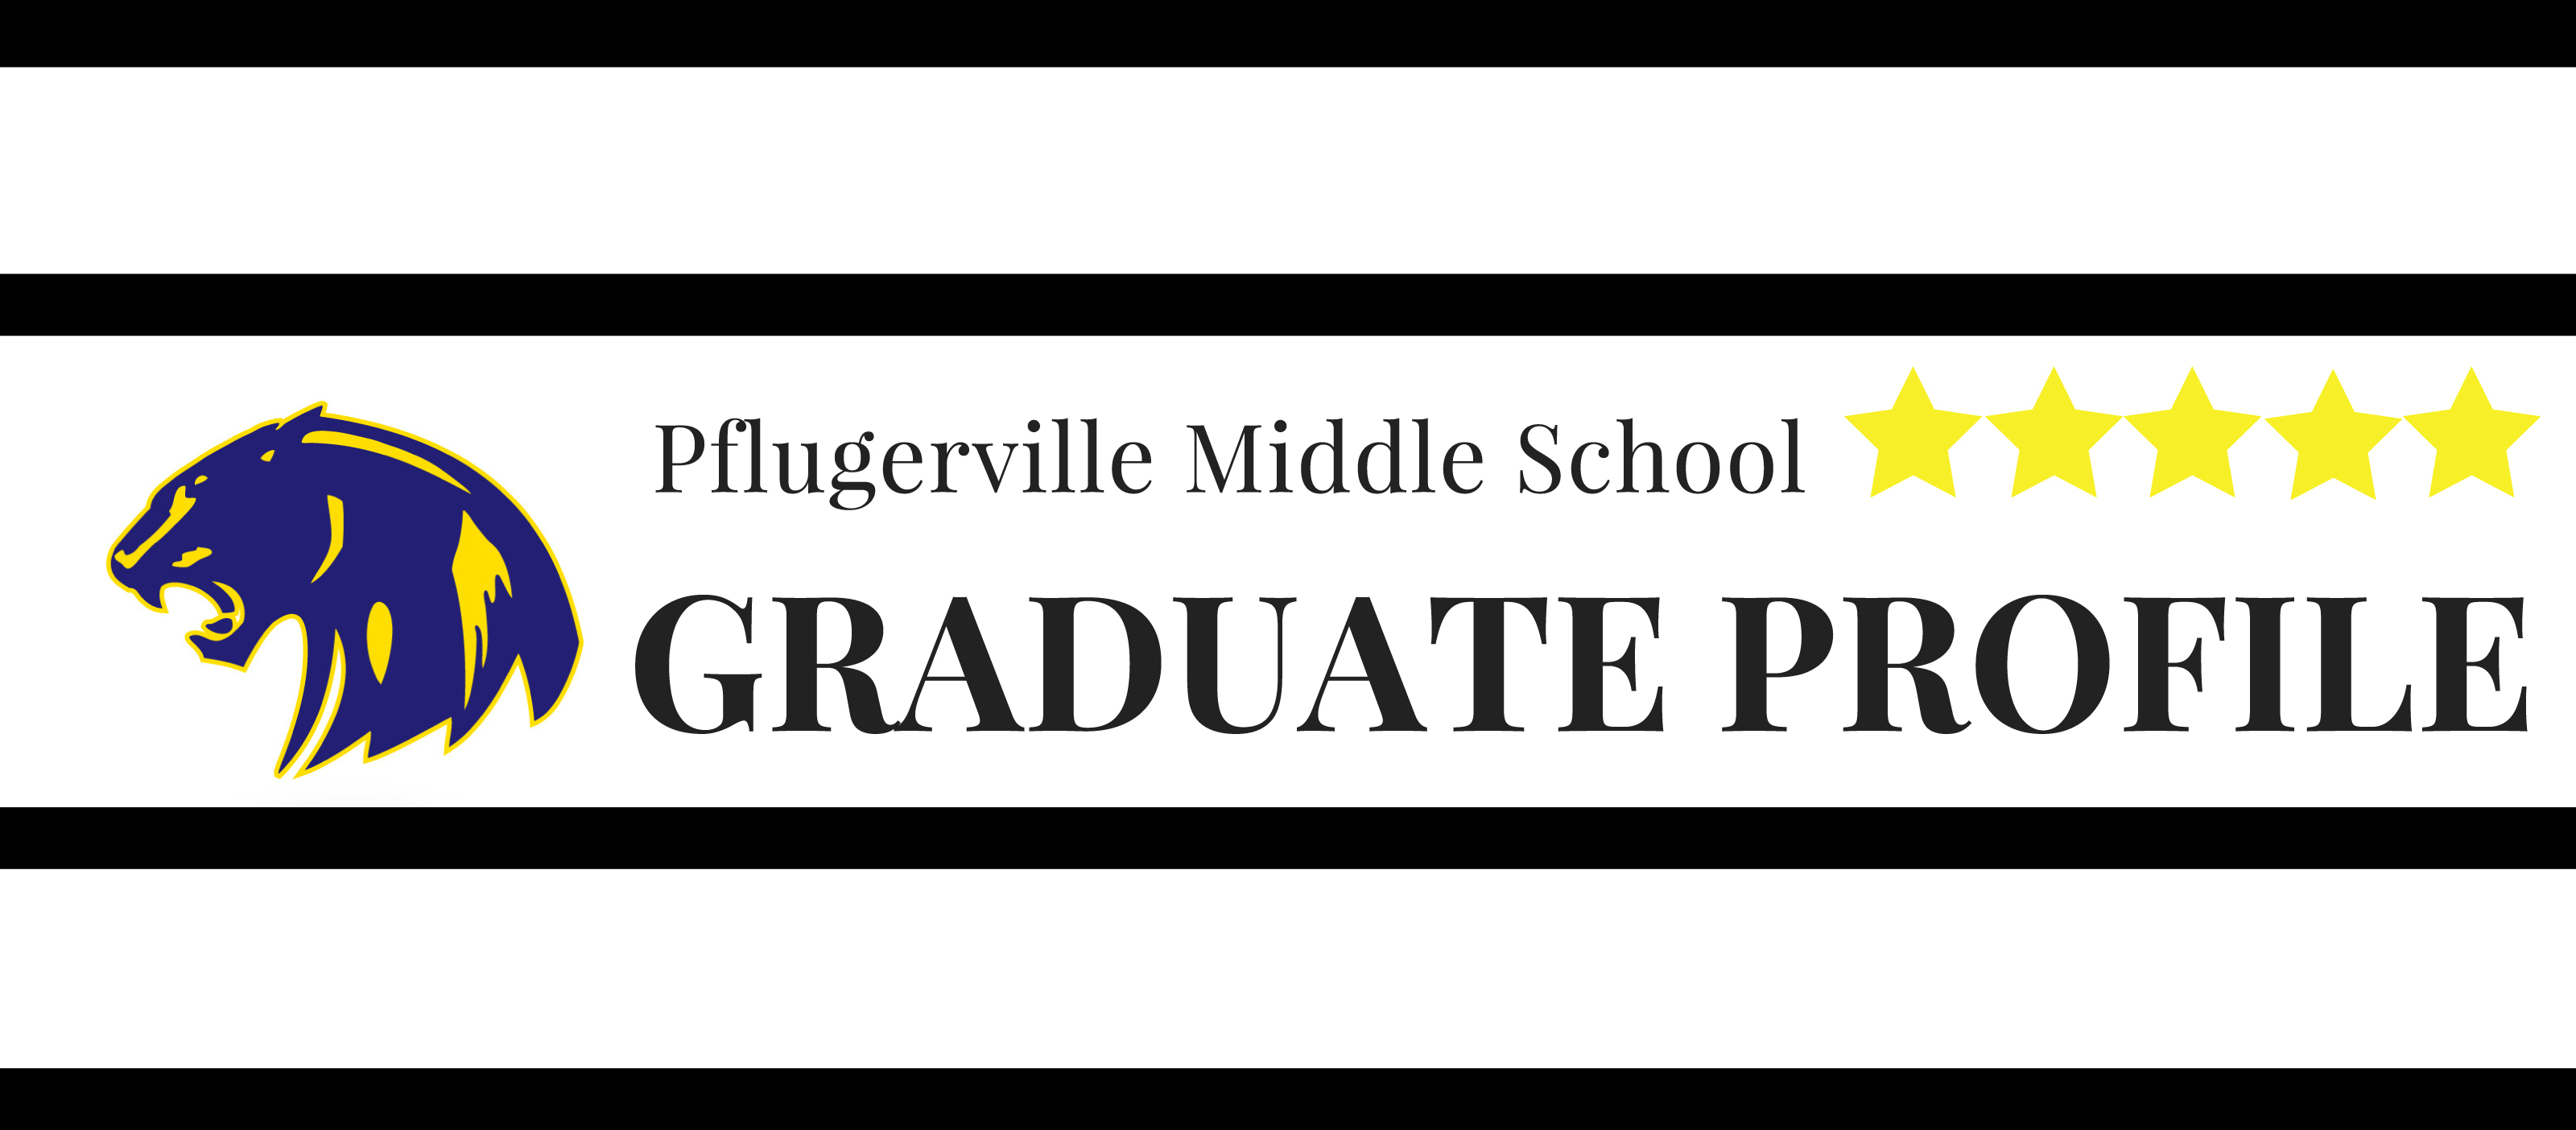 Pflugerville Middle School Graduate Profile